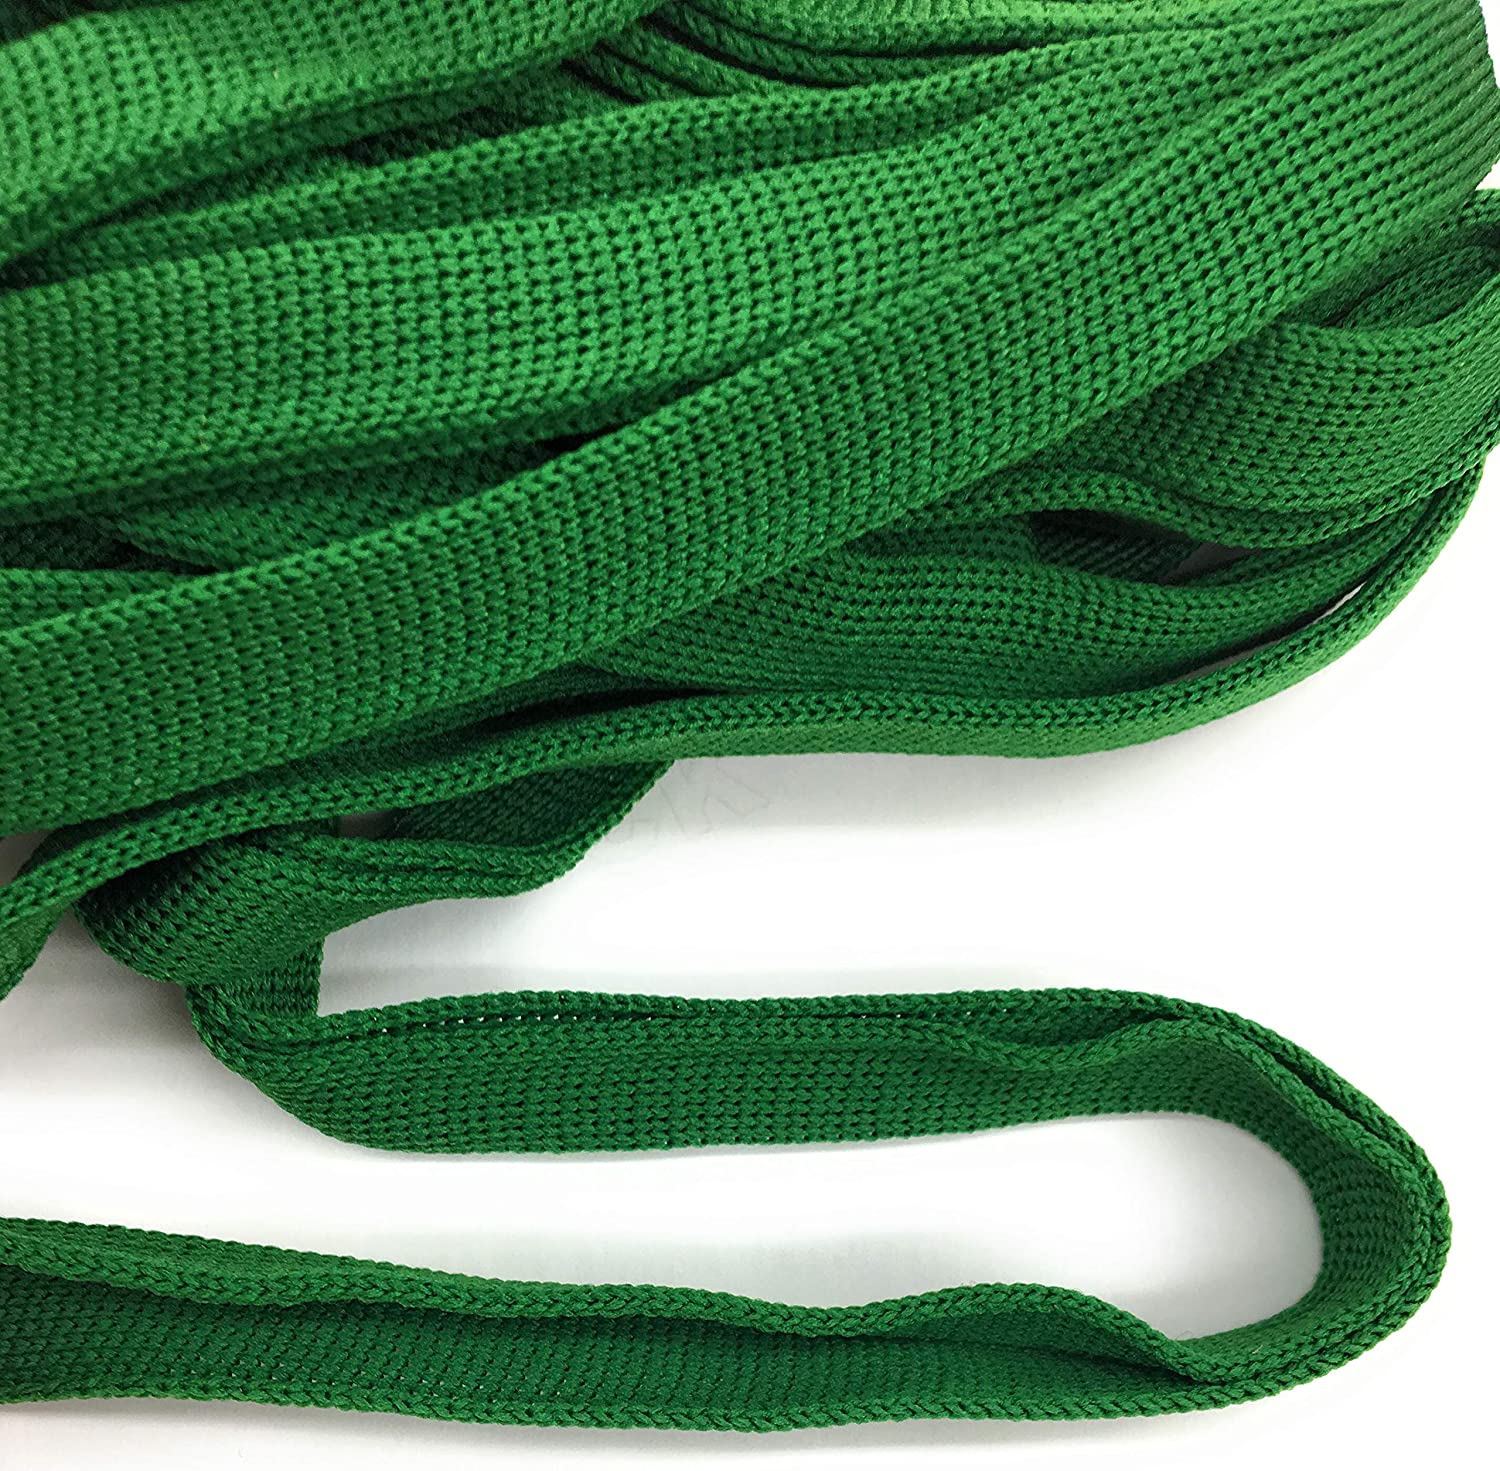 Classical Green FOLD Over -Knit- Braid Polyester Ribbon Trim 5 Yds Foldover Katz Trimming / Trims Unlimited